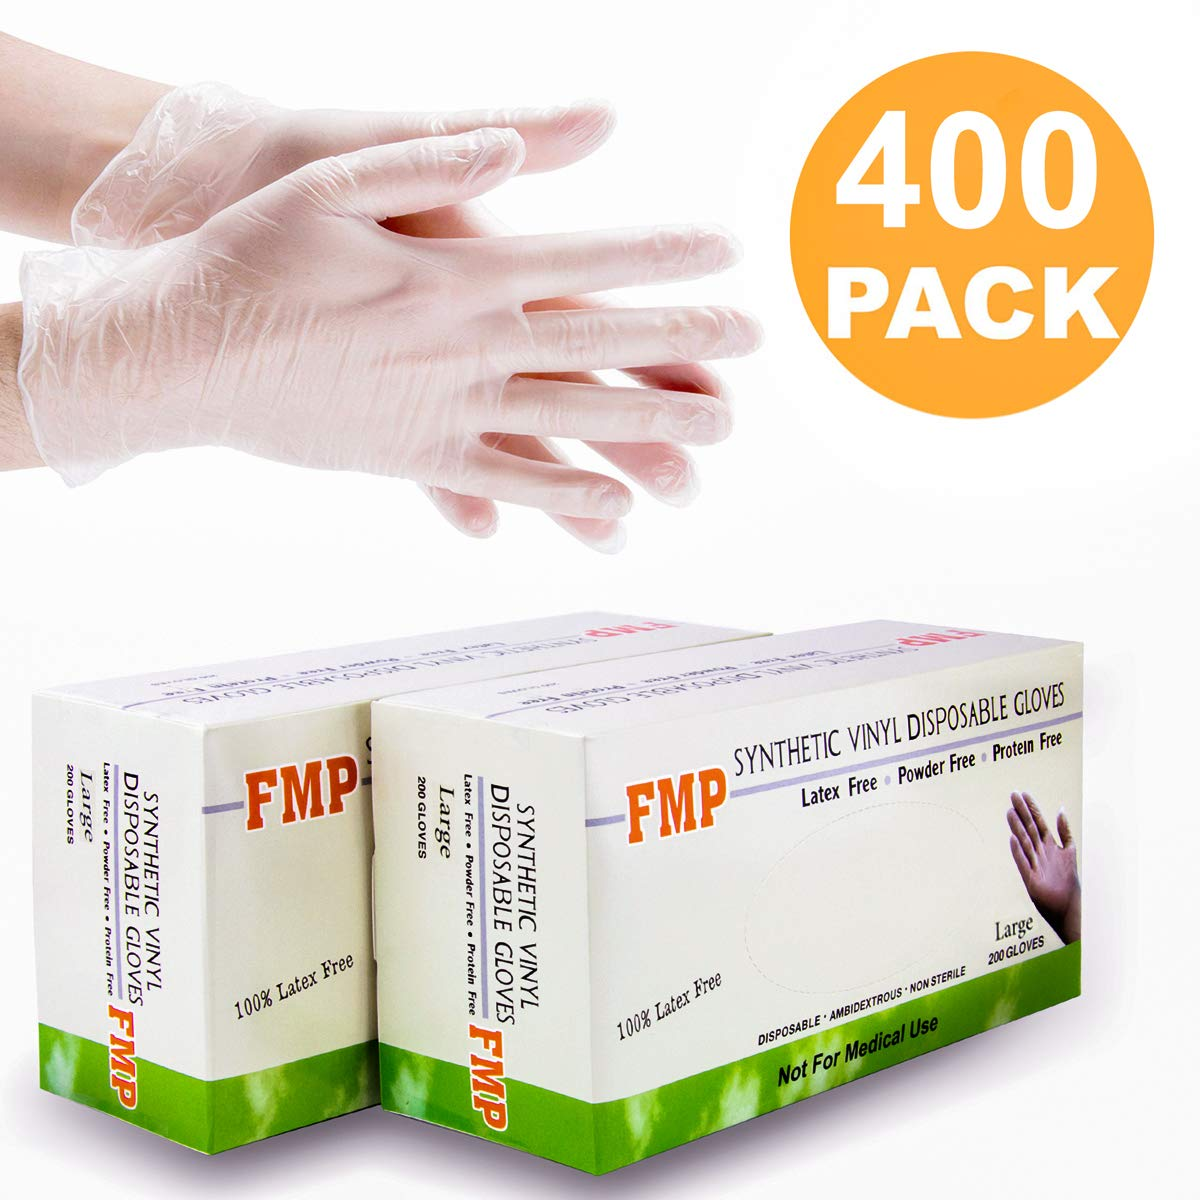 [400 Pack] Large Size Disposable Vinyl Gloves, Non-Sterile, Powder Free, Smooth Touch, Food Service Grade by Fit Meal Prep